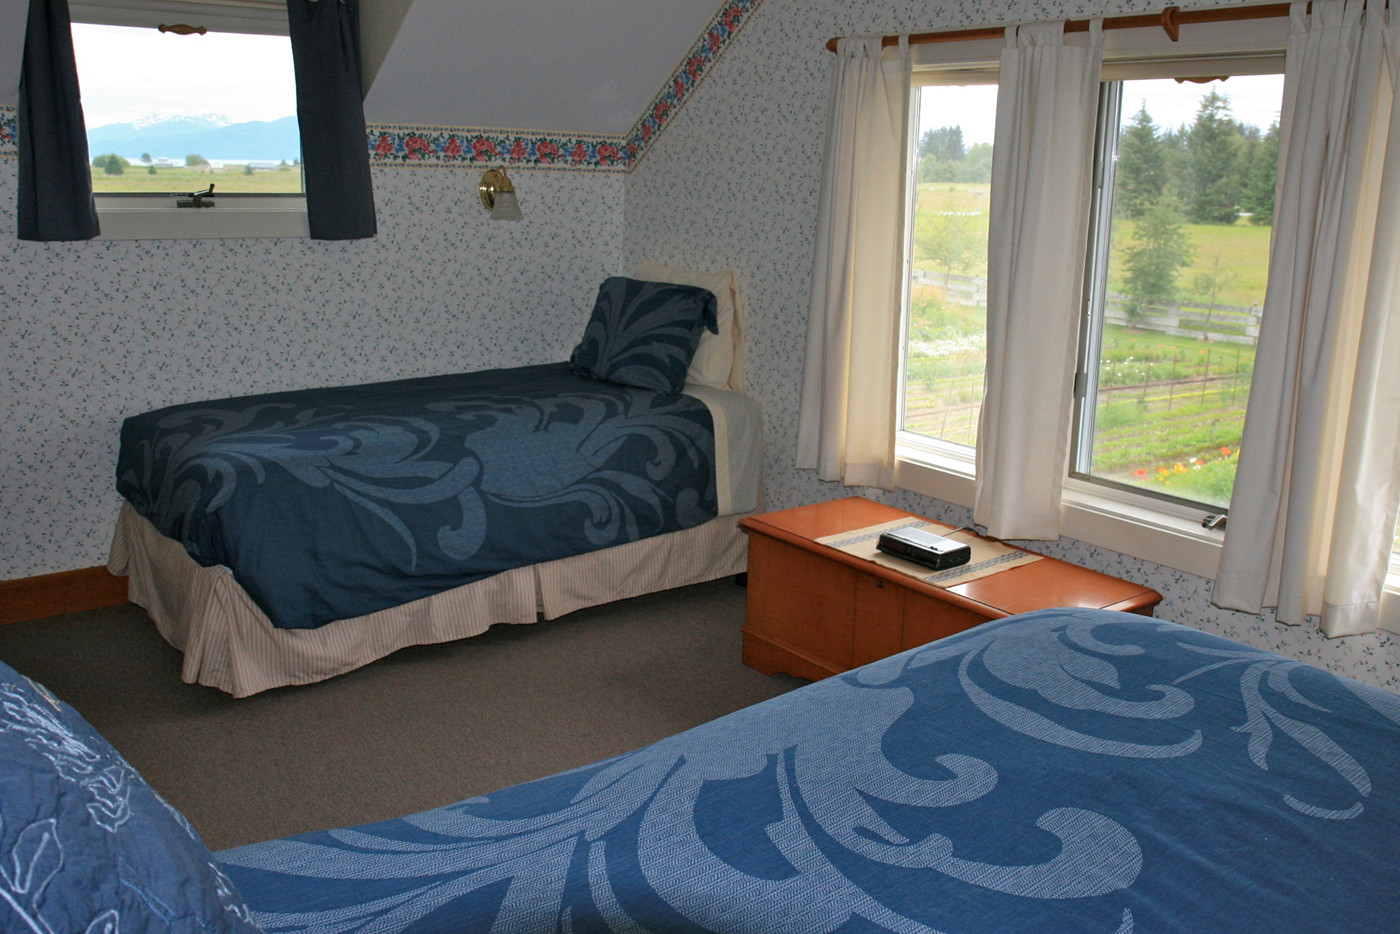 Fairweather Room with Icy Strait view